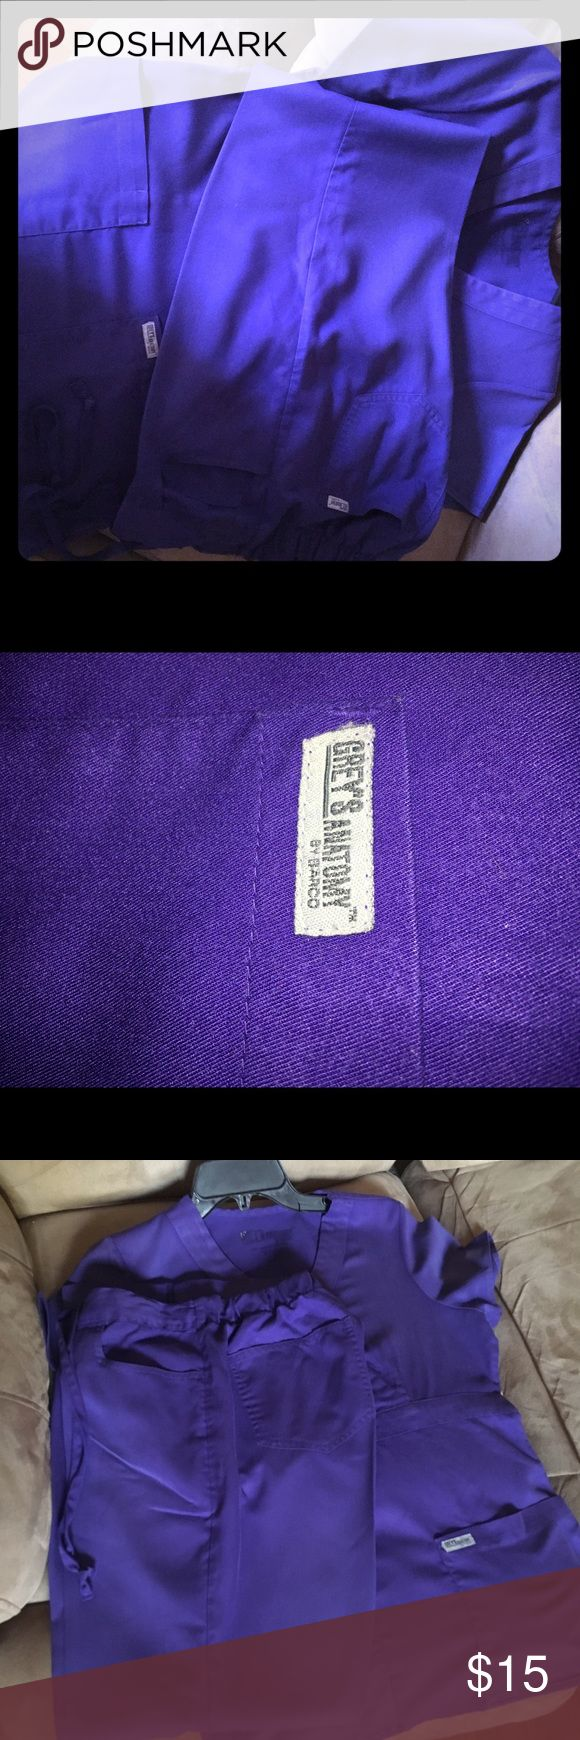 Greys Anatomy purple scrub set Small Soft purple scrub set matching top and bottom. Great condition. Always kept ironed and taken care of. There is a slight tear at bottom of V in top of shirt but is not noticeable when worn. Its inside where no one will see. That's only flaw. Otherwise flawless. Beautiful on. Greys Anatomy Other